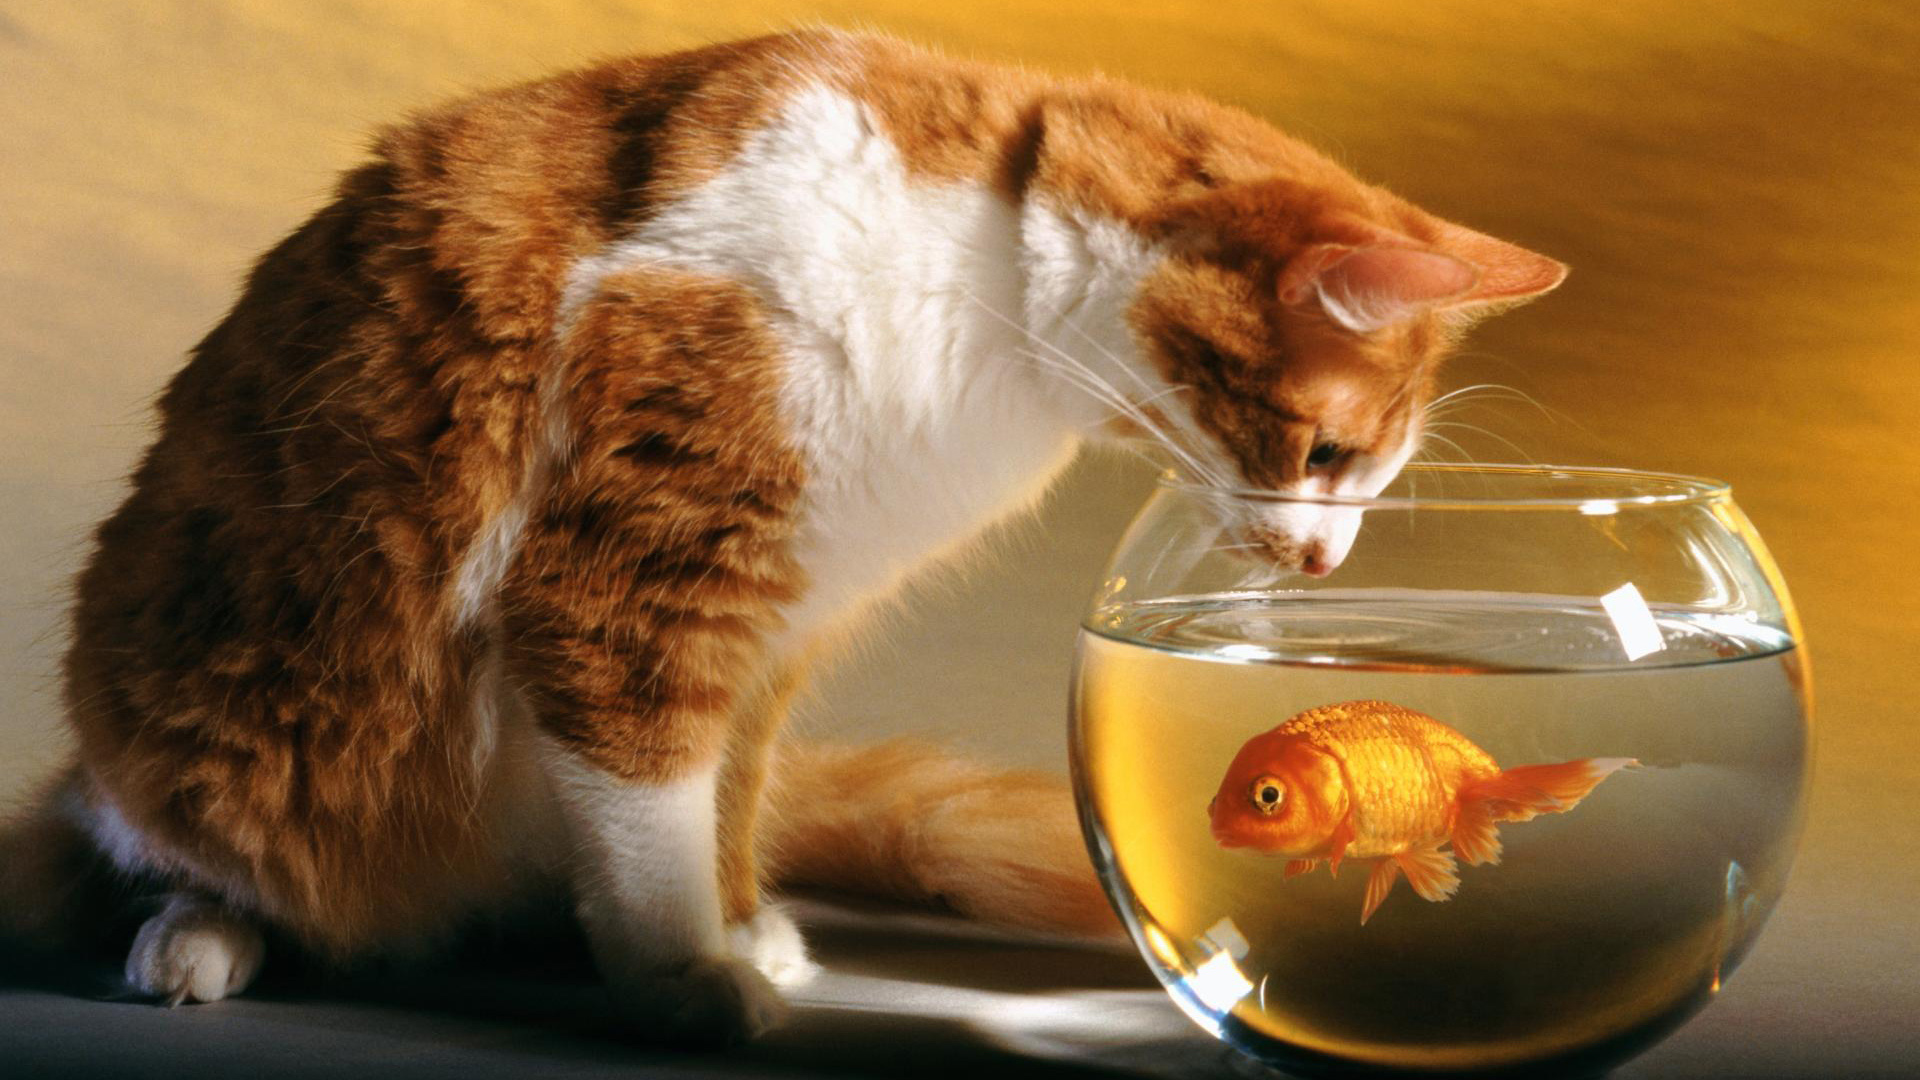 Cat and Fish 518.03 Kb